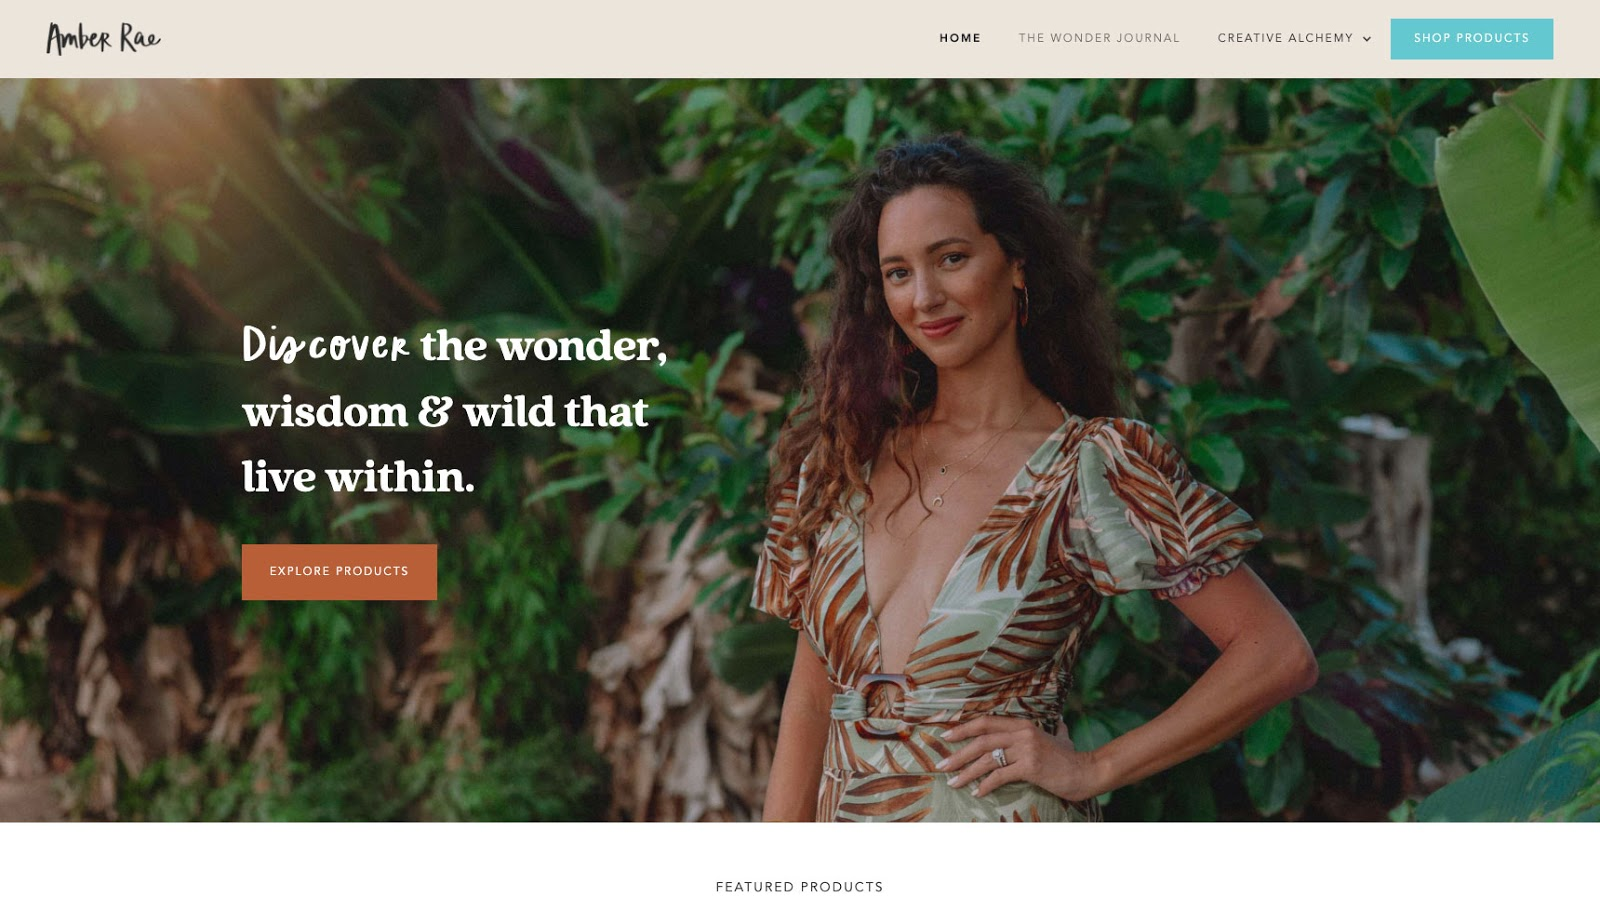 Amber Rae's website is an example of Webflow CMS and Ecommerce in action